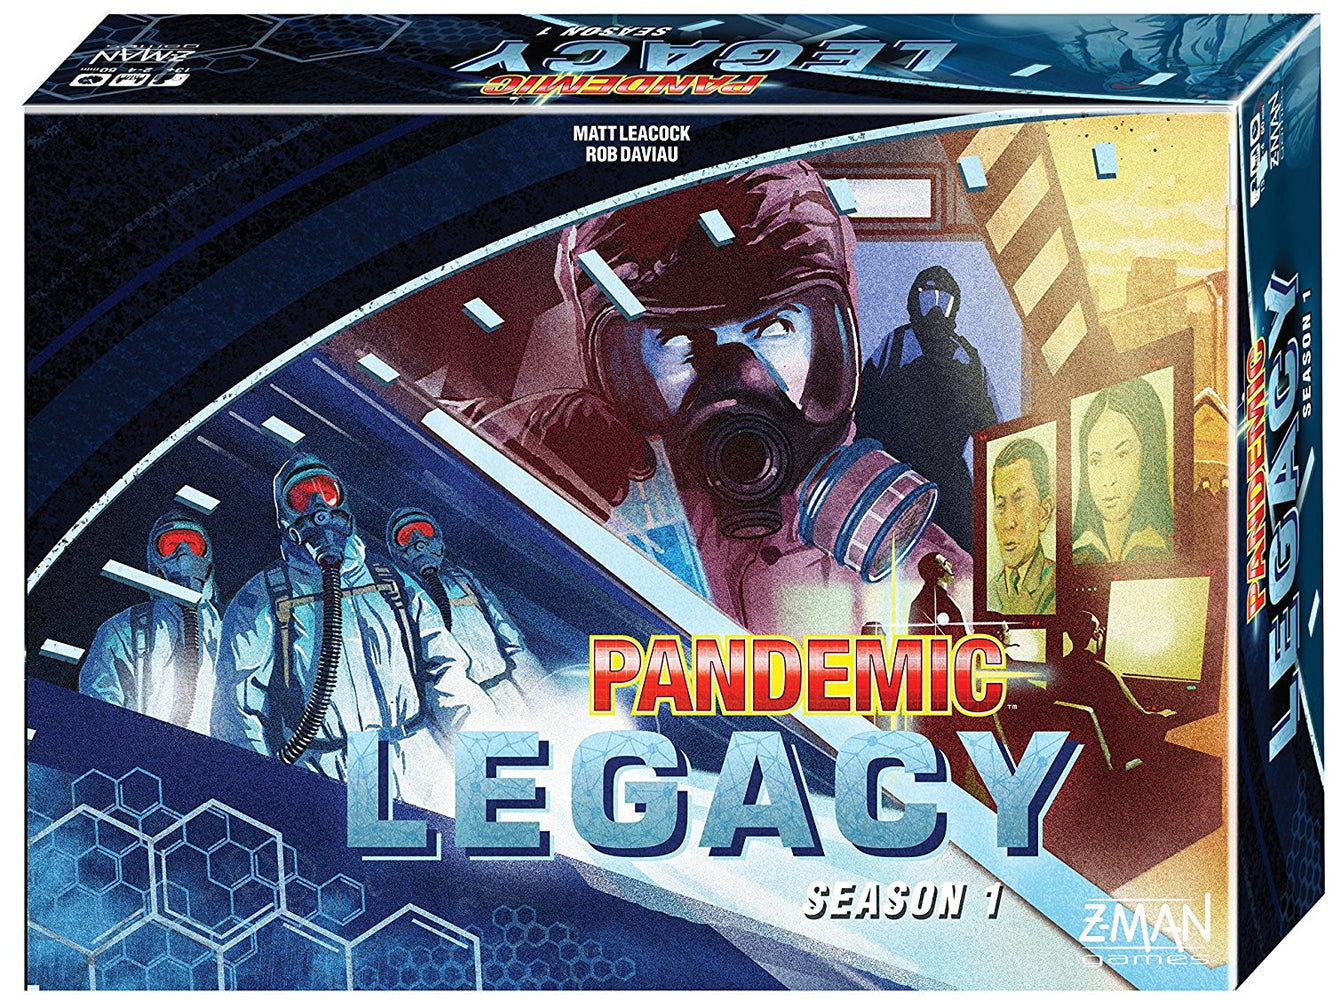 Pandemic : Legacy Season 1 Blue Box